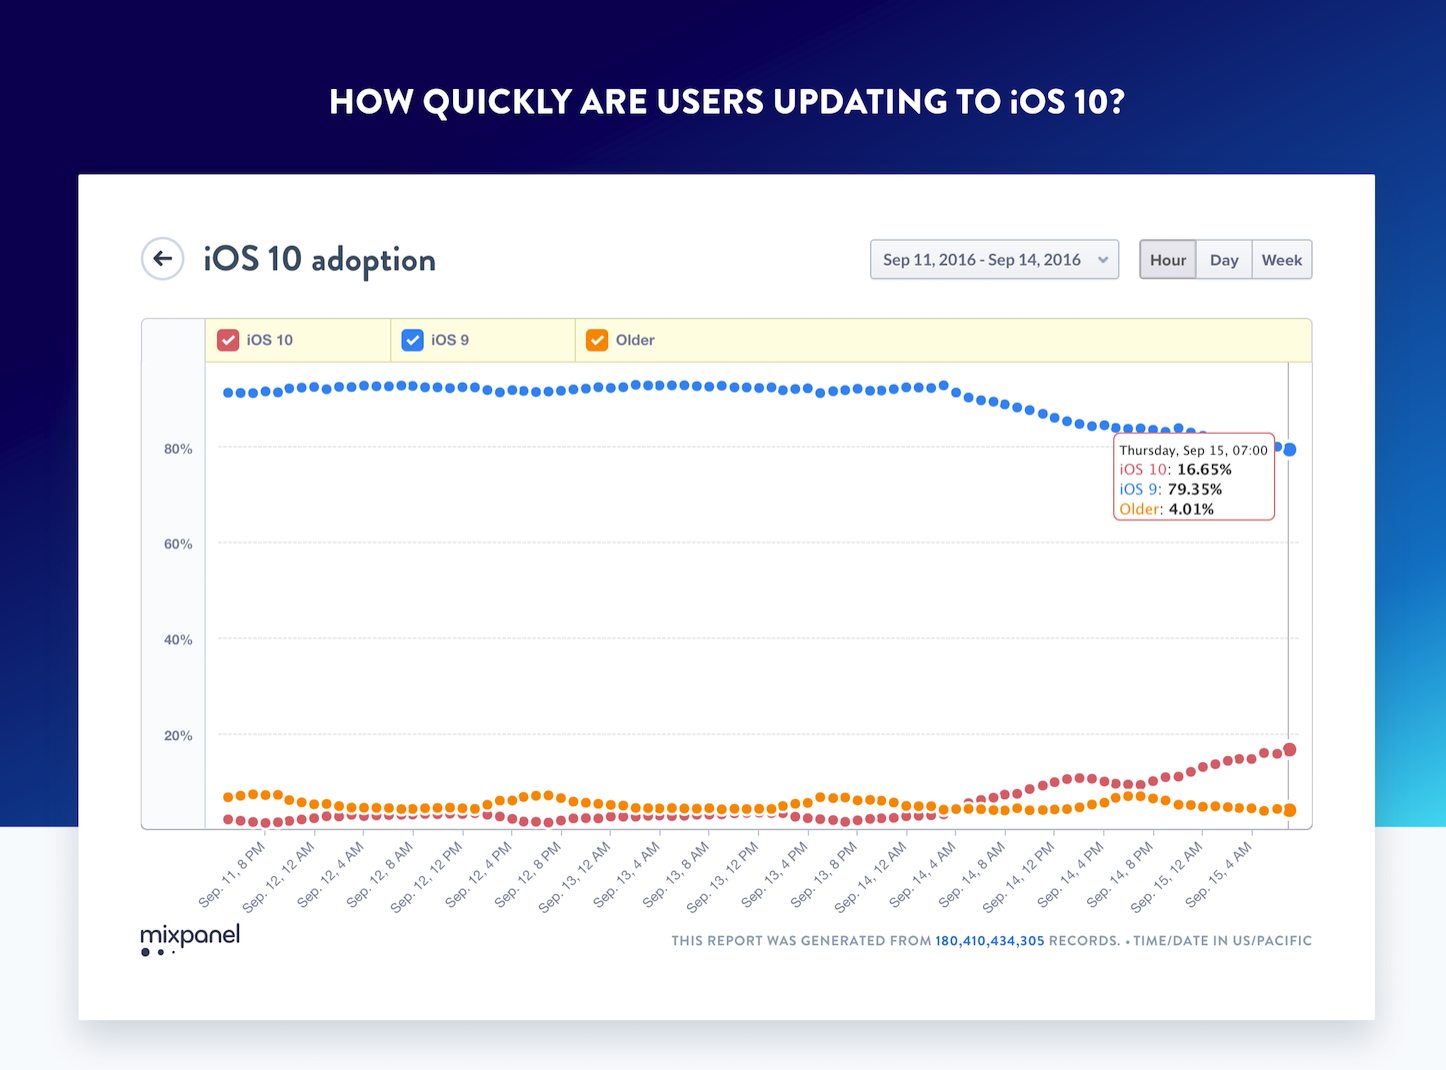 IOS10 adoption speed